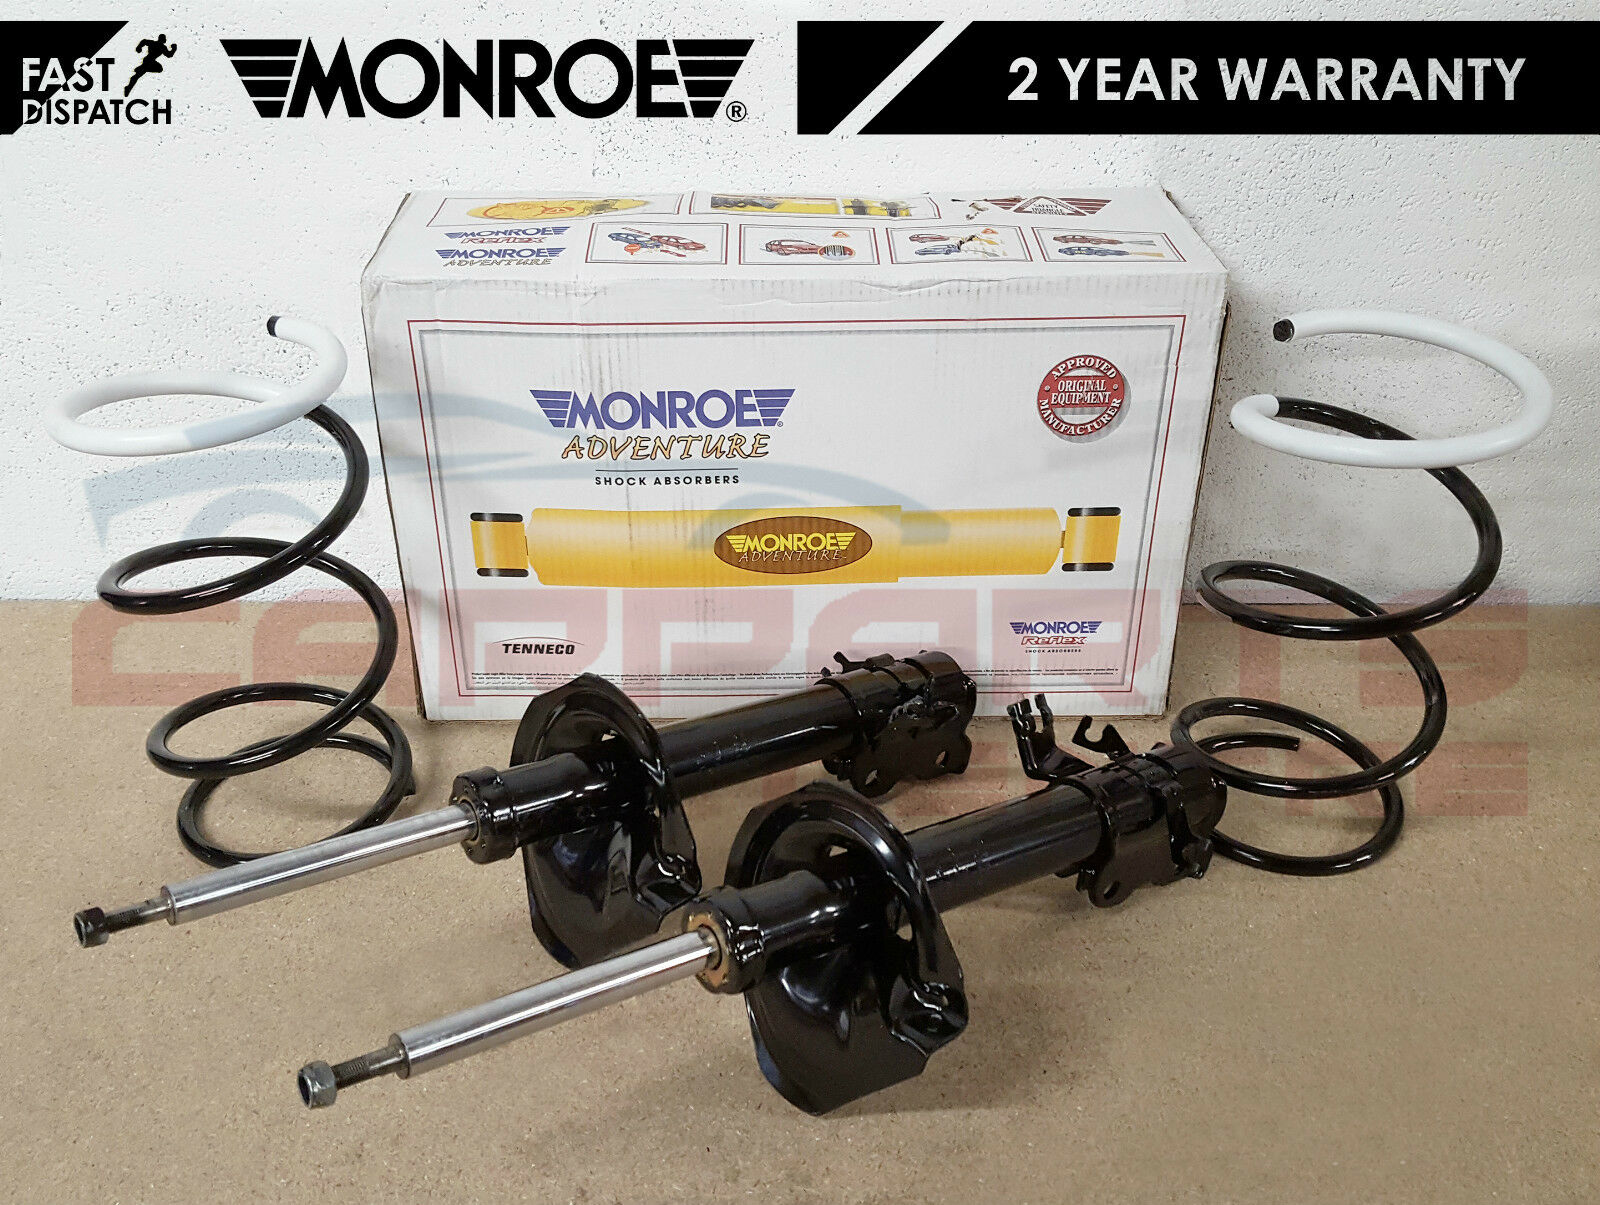 FOR NISSAN XTRAIL X-TRAIL T30 2.2 DCi 2 FRONT MONROE SHOCK ABSORBER SPRINGS